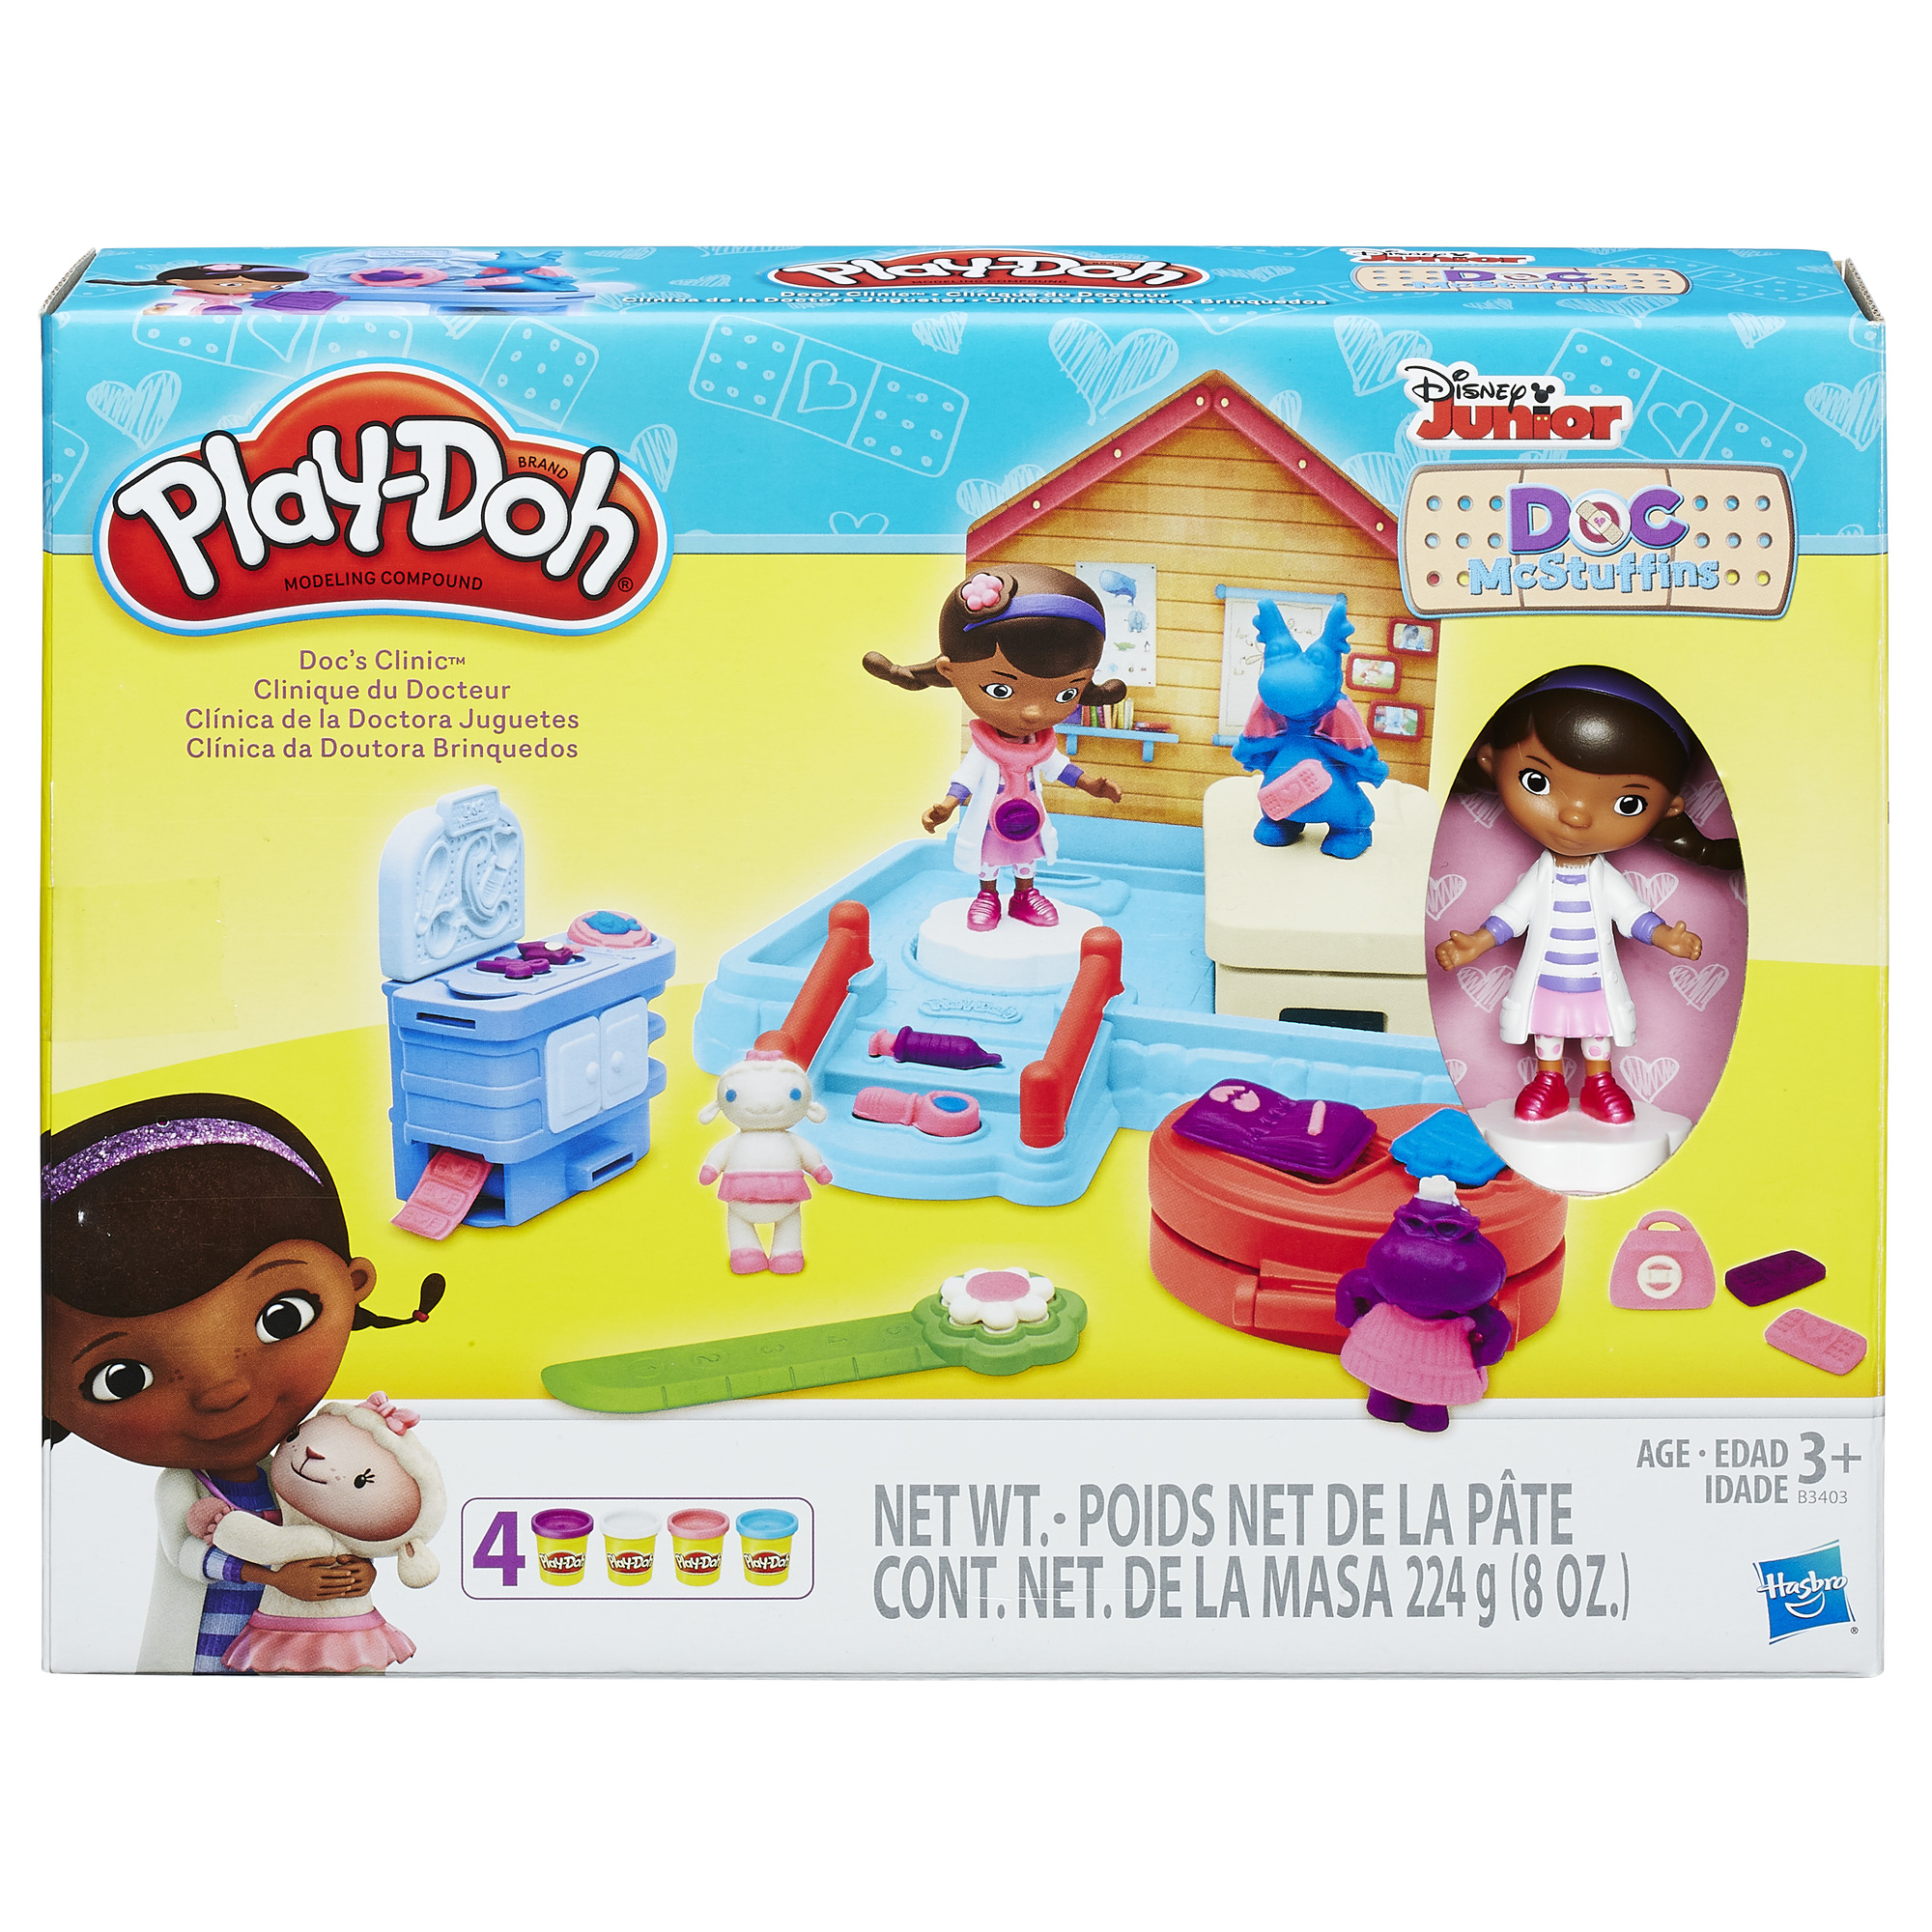 hasbro play-doh disney junior doc's clinic doc mcstuffins modeling compound age 3+